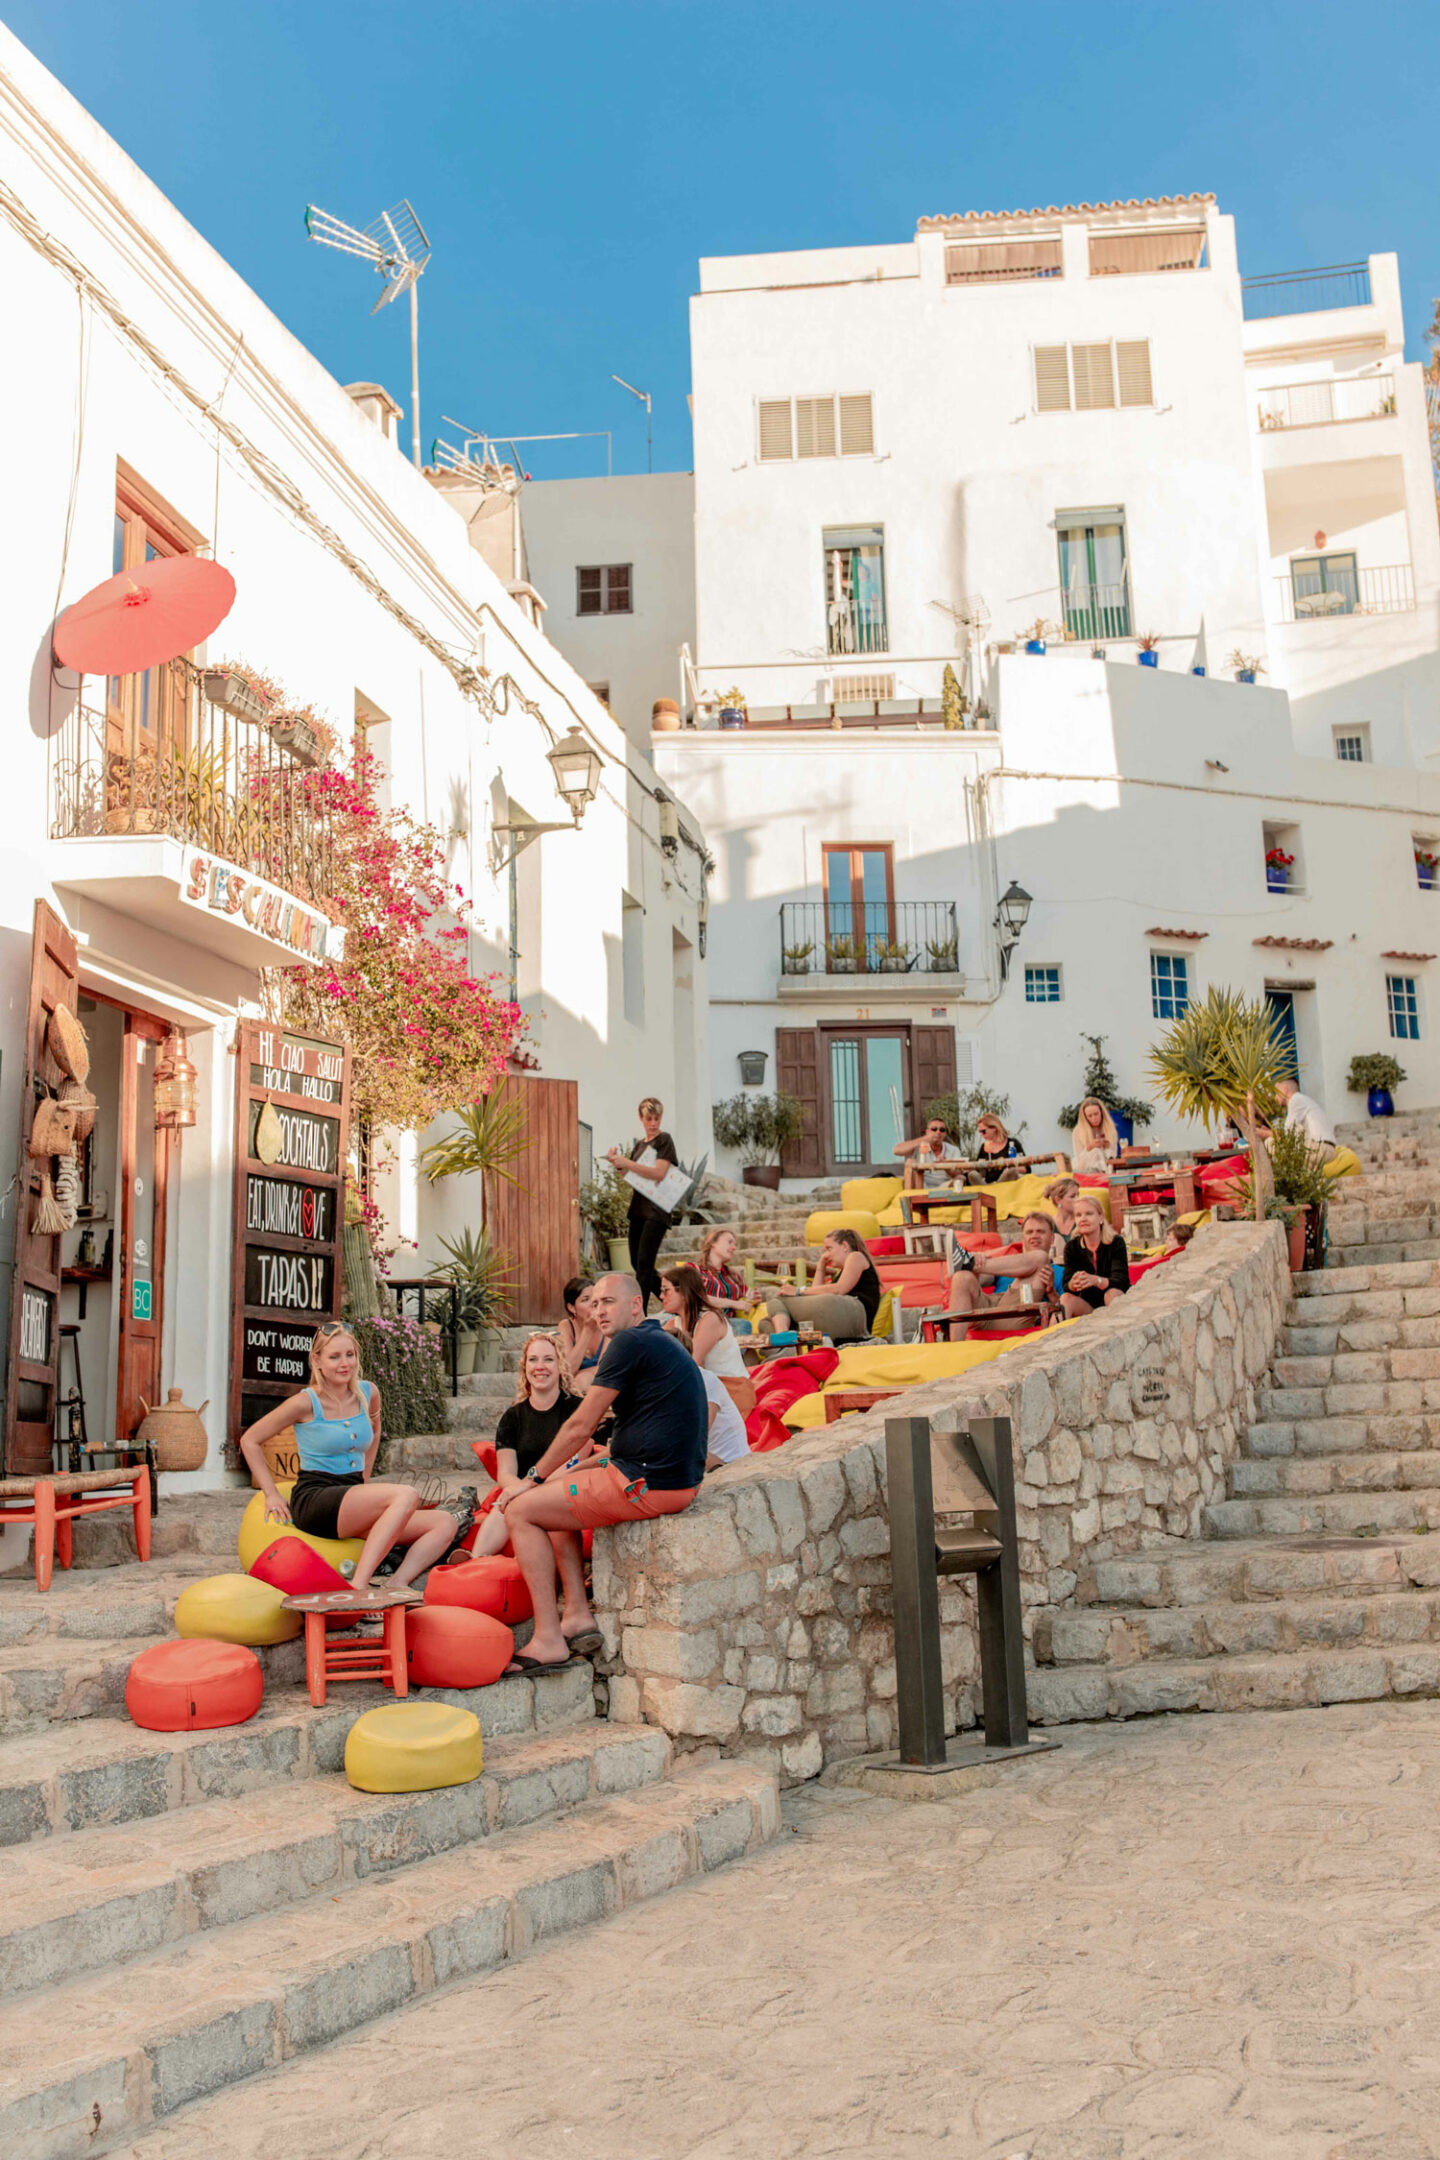 Top-things-to-do-in-Ibiza-Bucket-list--Instagram-Story-Template--kelseyinlondon-Kelsey-Heinrichs--What-to-do-in-Ibiza--Where-to-go-in-Ibiza-top-places-in-Ibiza-2